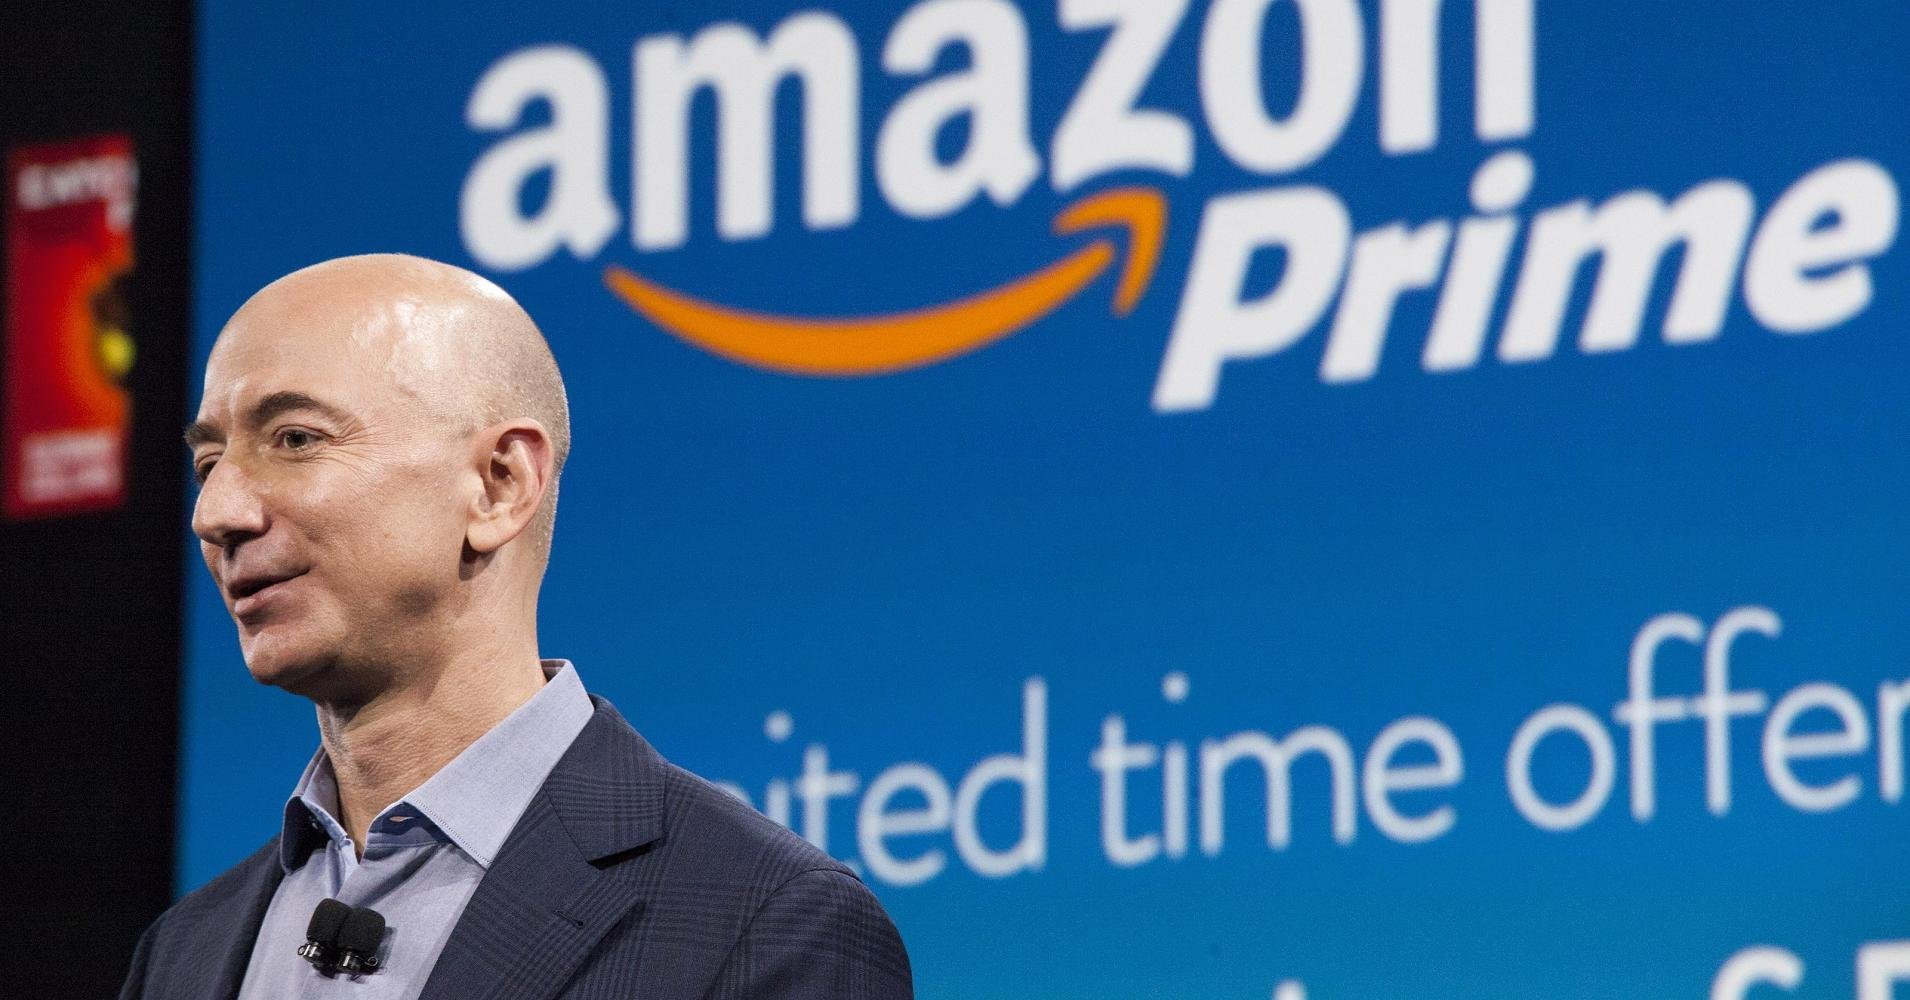 Amazon is continuing to define what consumers expect